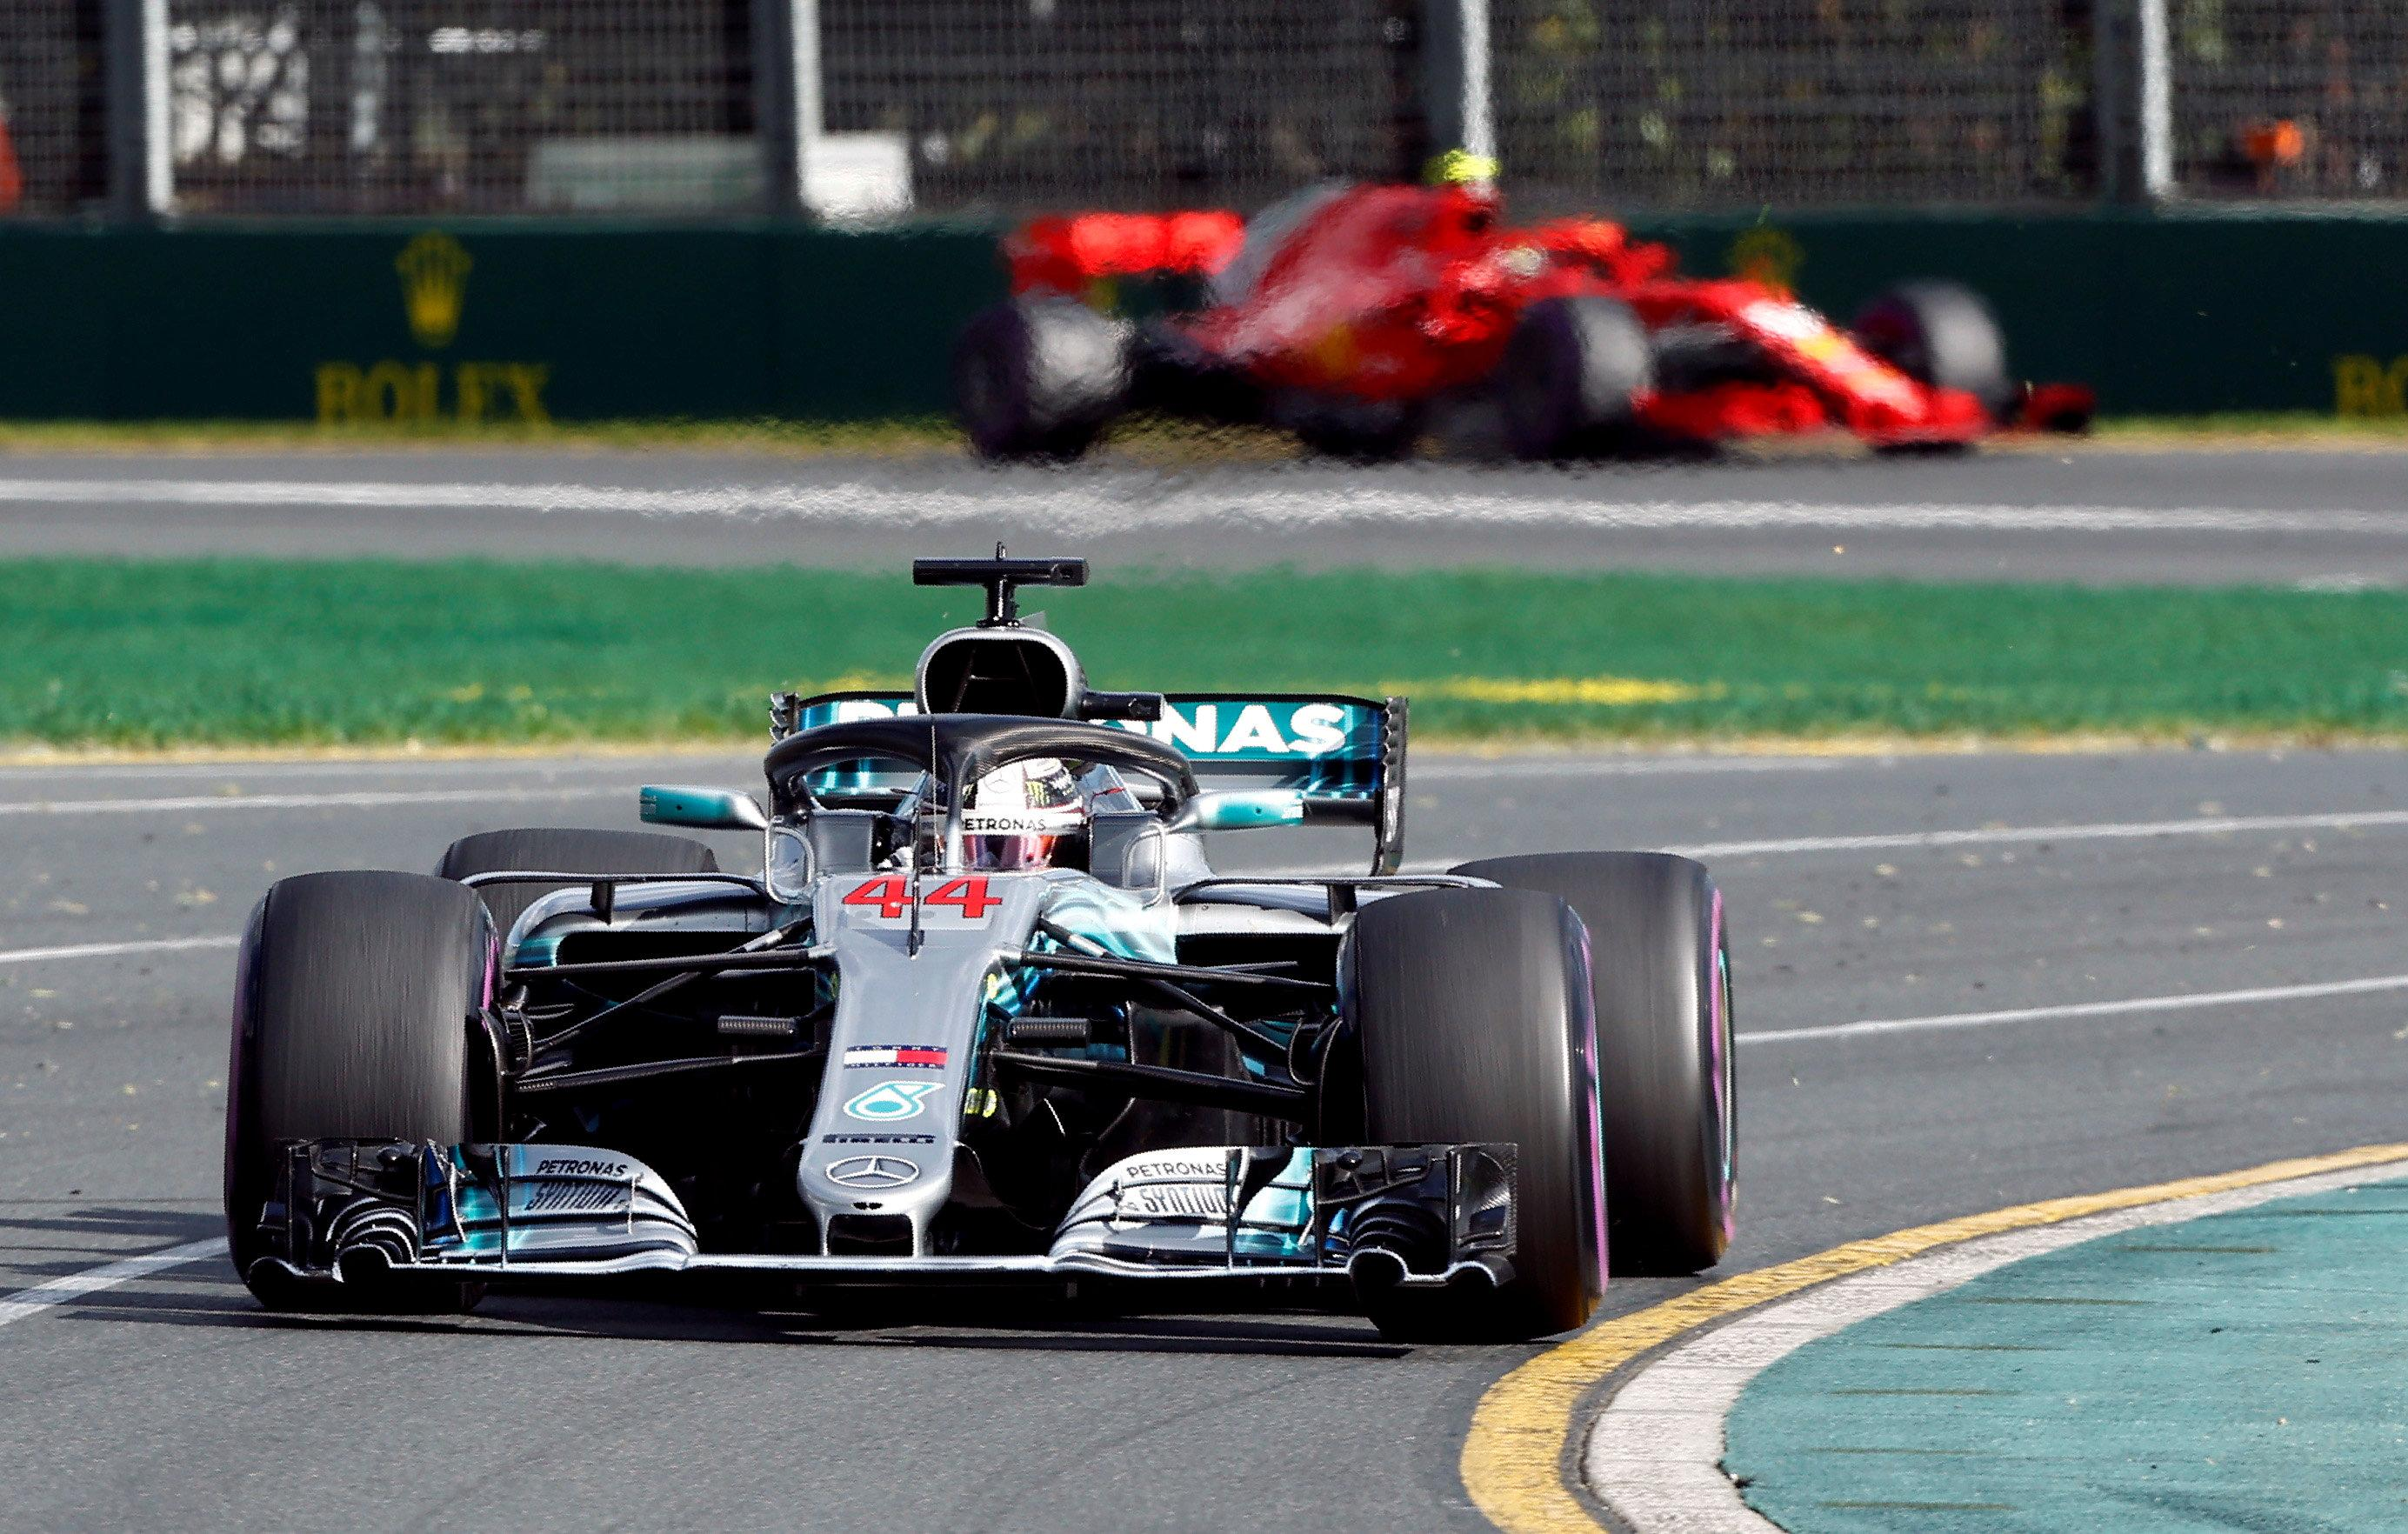 Lewis Hamilton was leading until lap 26, when safety car was deployed